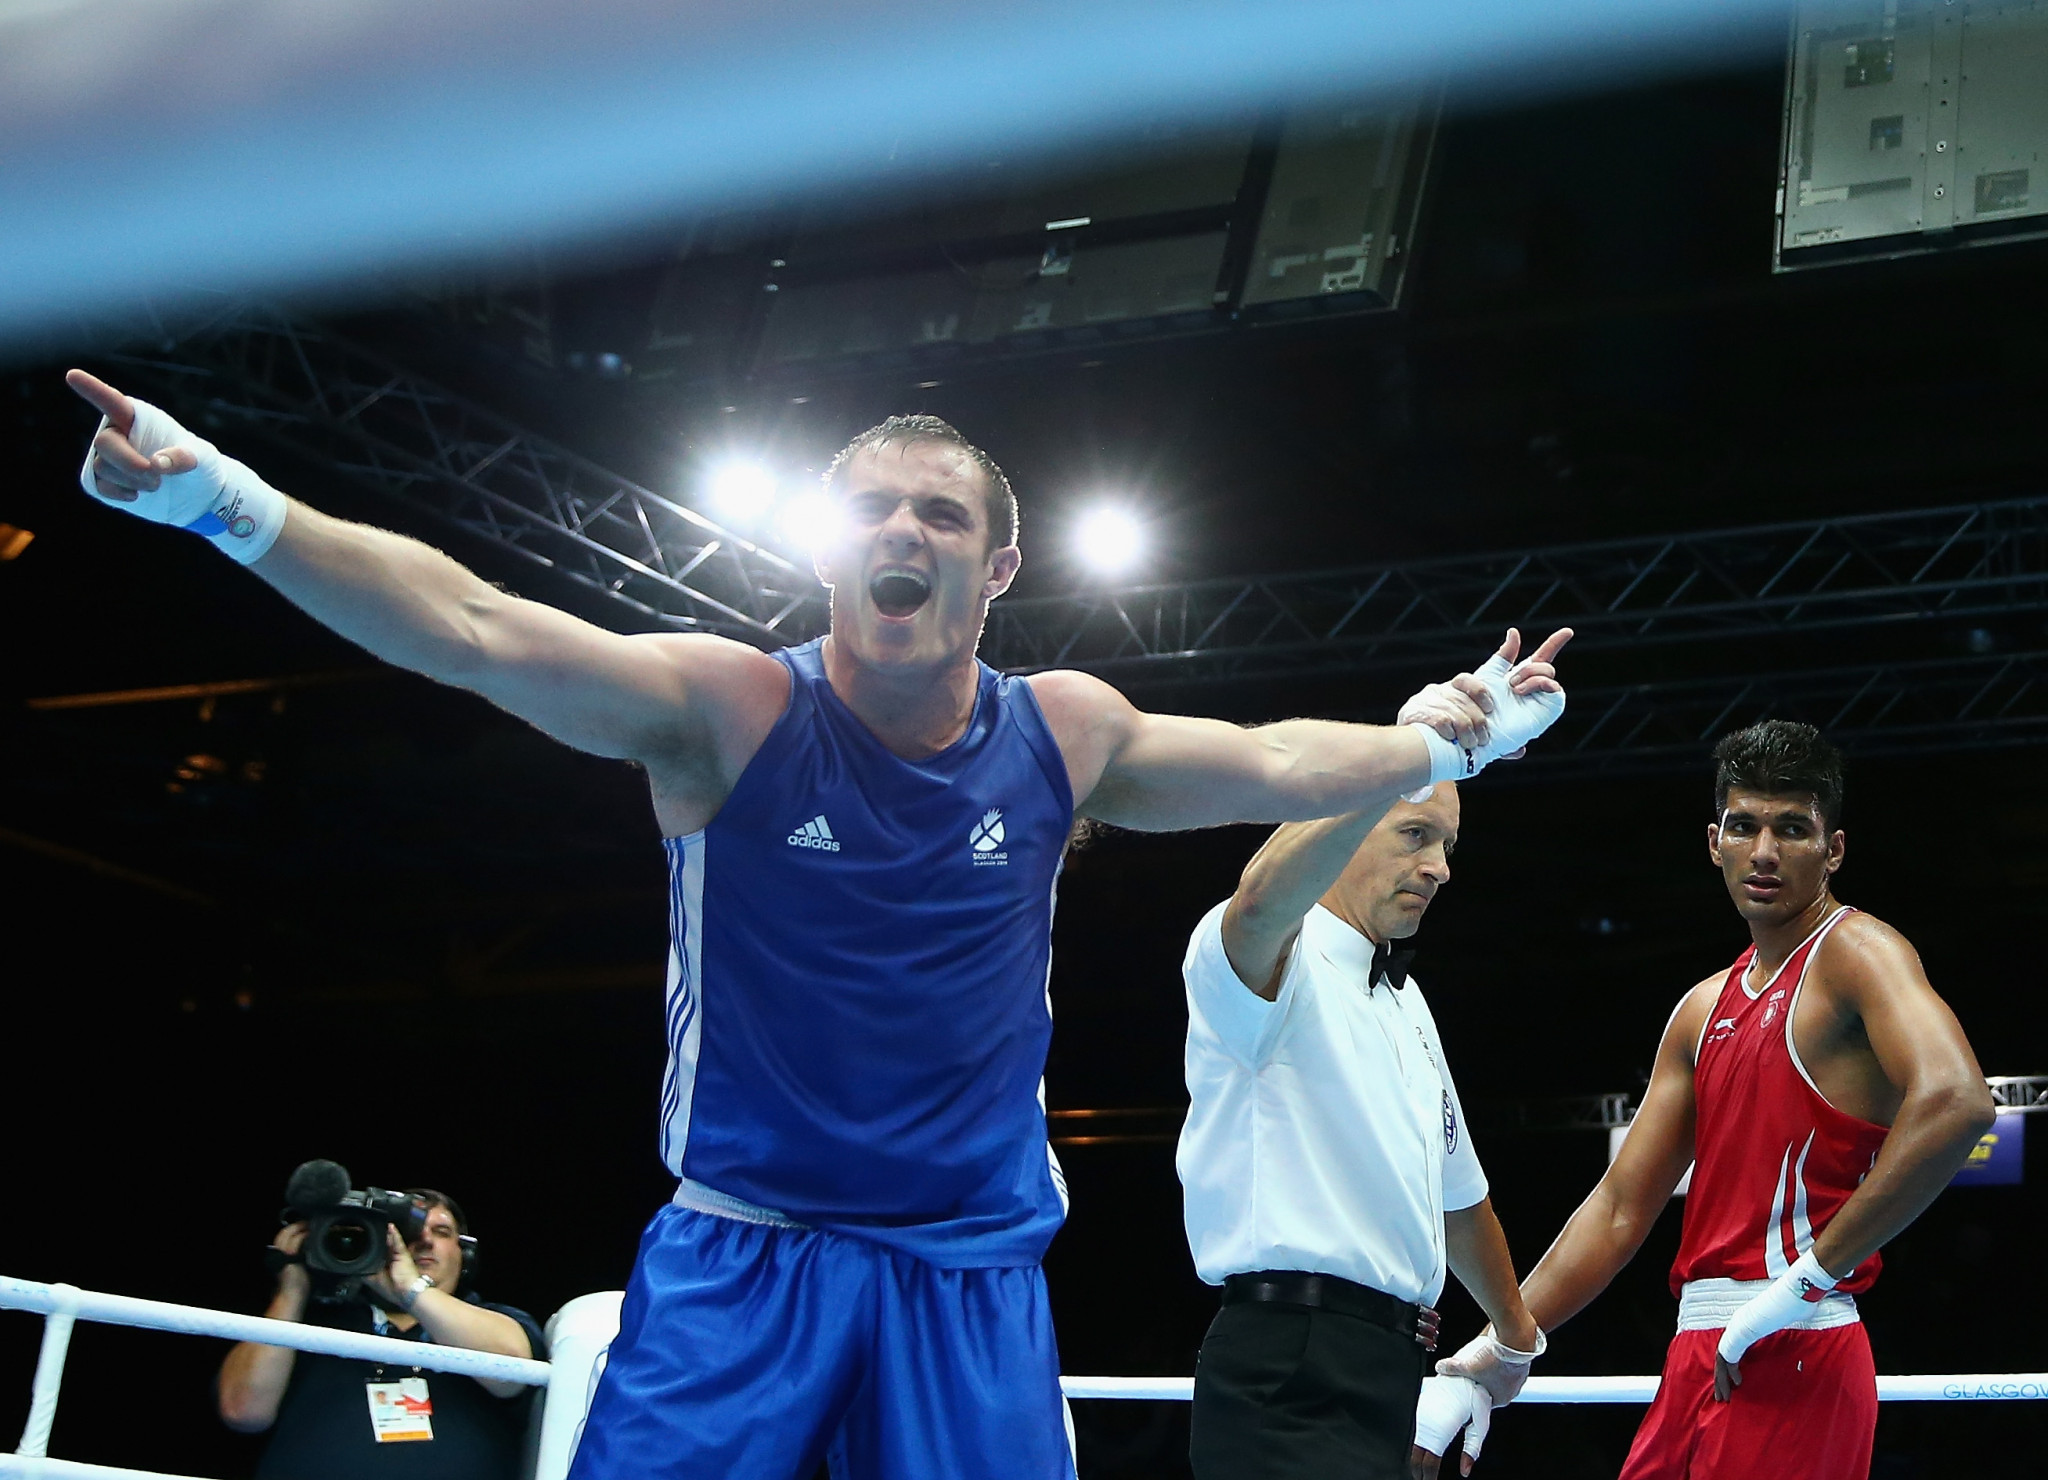 'There's not a chance I lost' - Walsh heartbroken after final defeat